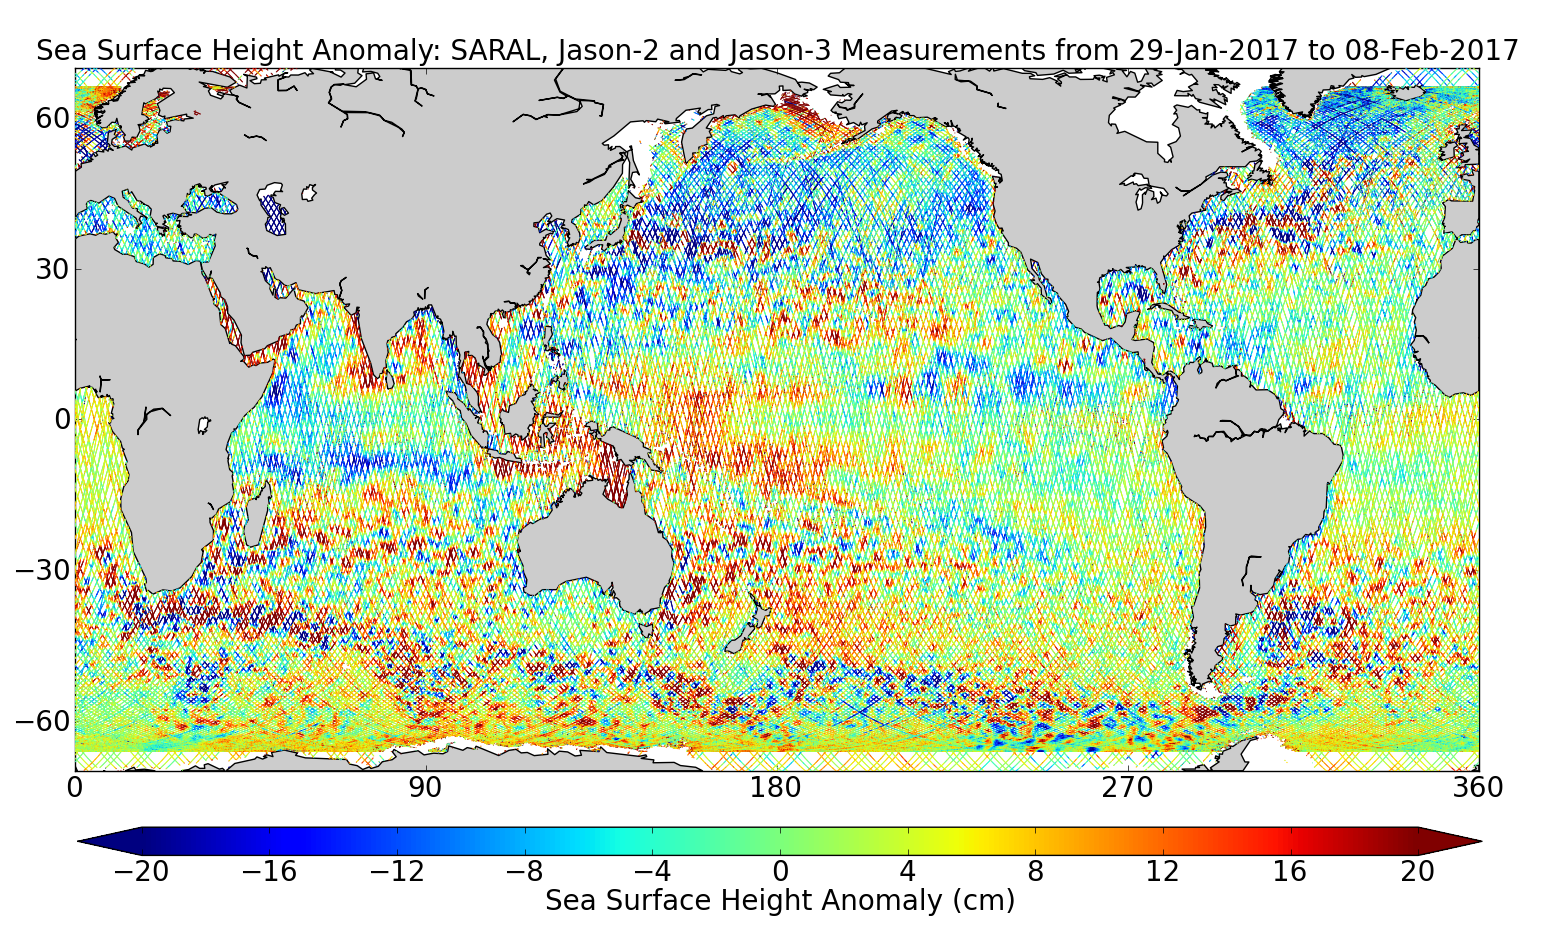 Sea Surface Height Anomaly: SARAL, Jason-2 and Jason-3 Measurements from 29-Jan-2017 to 08-Feb-2017